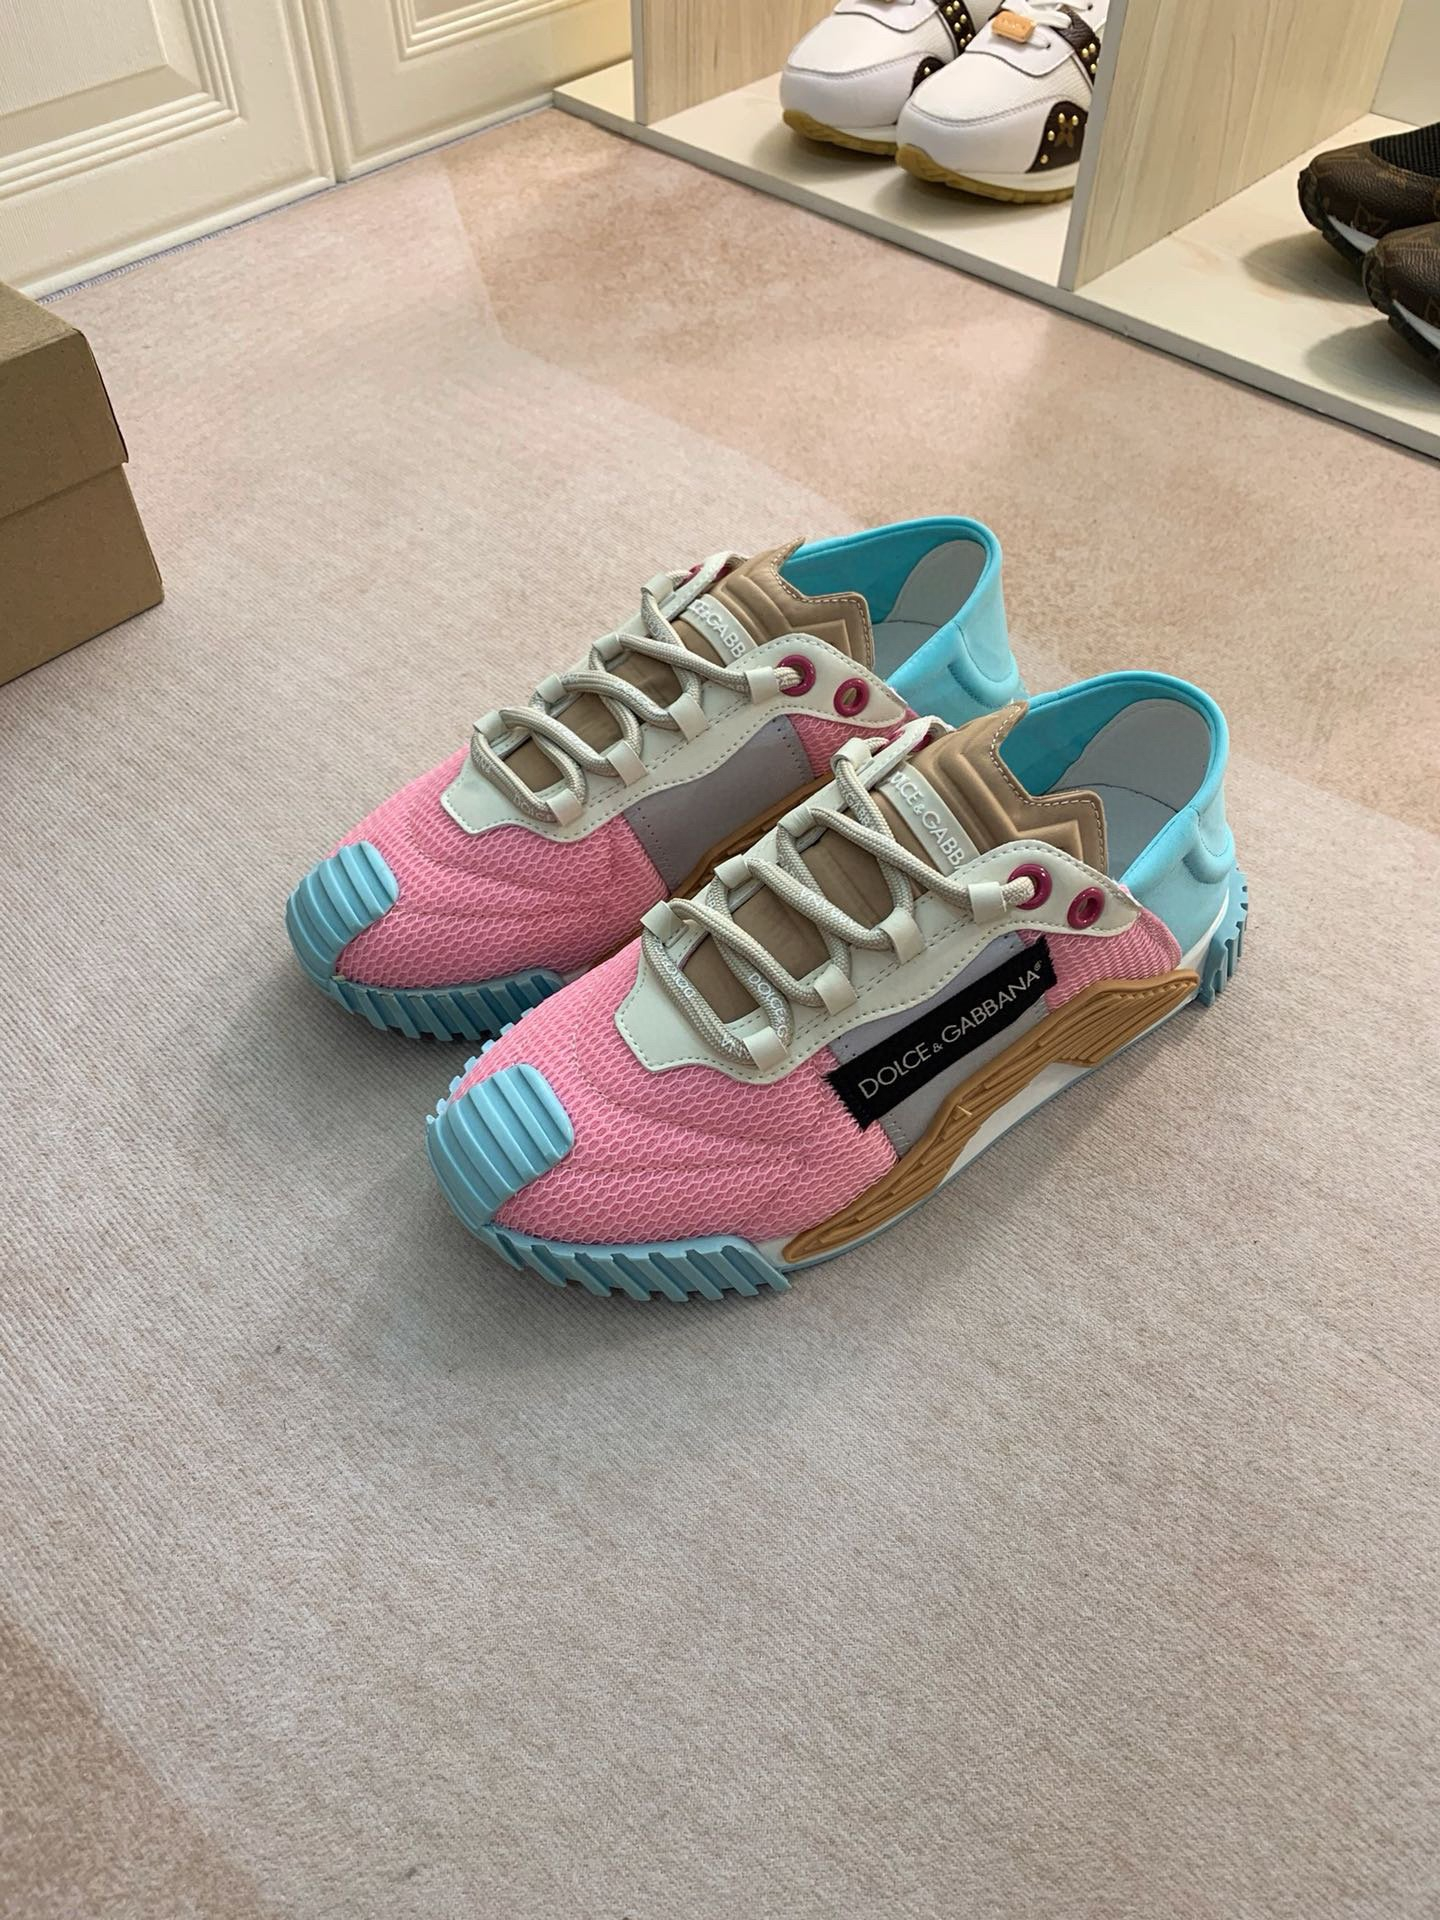 Image of D&G DOLCE & GABBANA 2021 NEW ARRIVALS Men's And Women's NS1 Sneakers Shoes